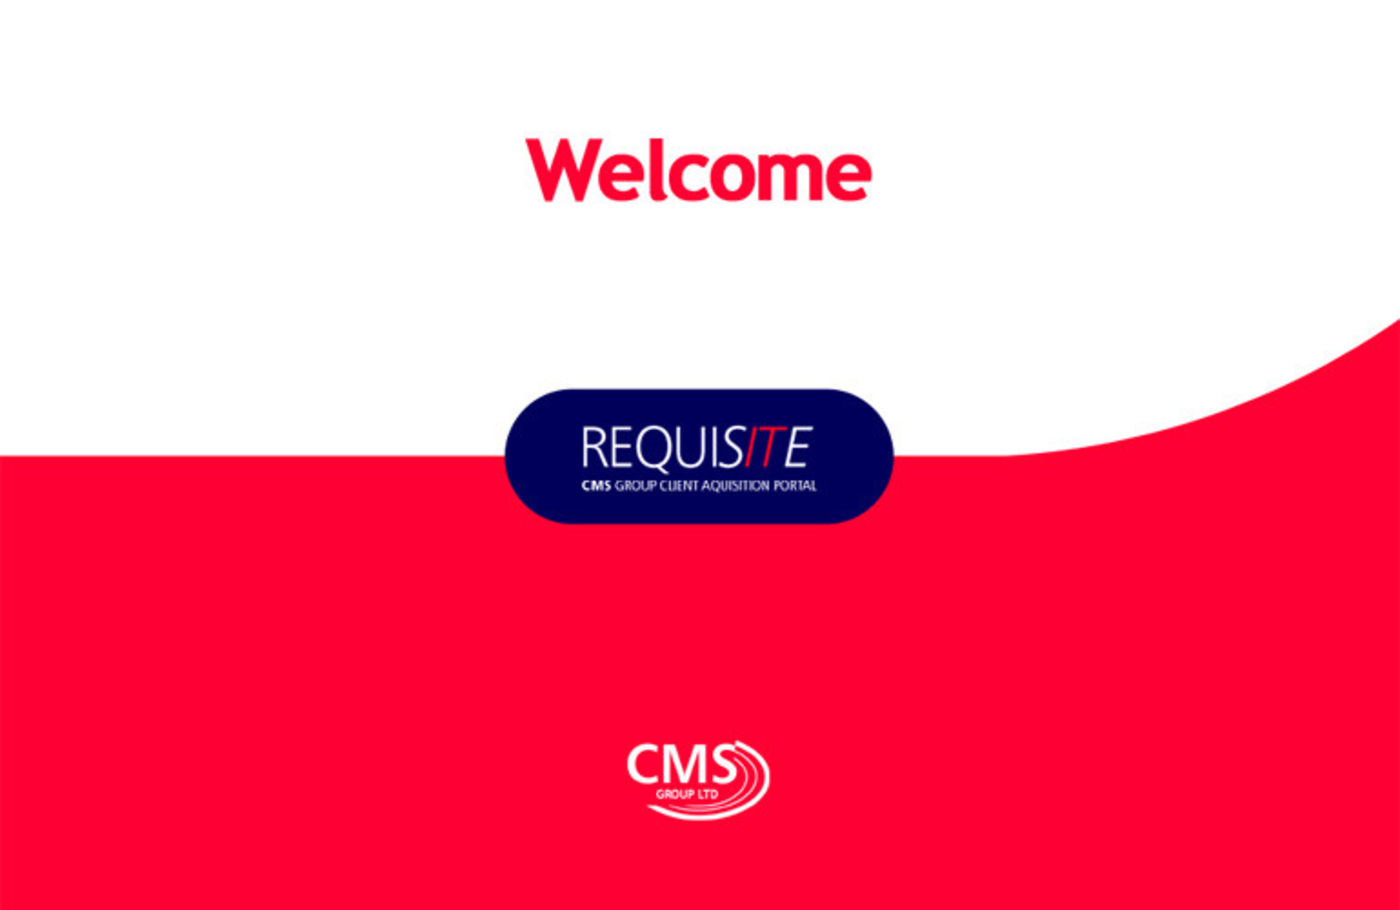 CMS Group Ltd Welcome